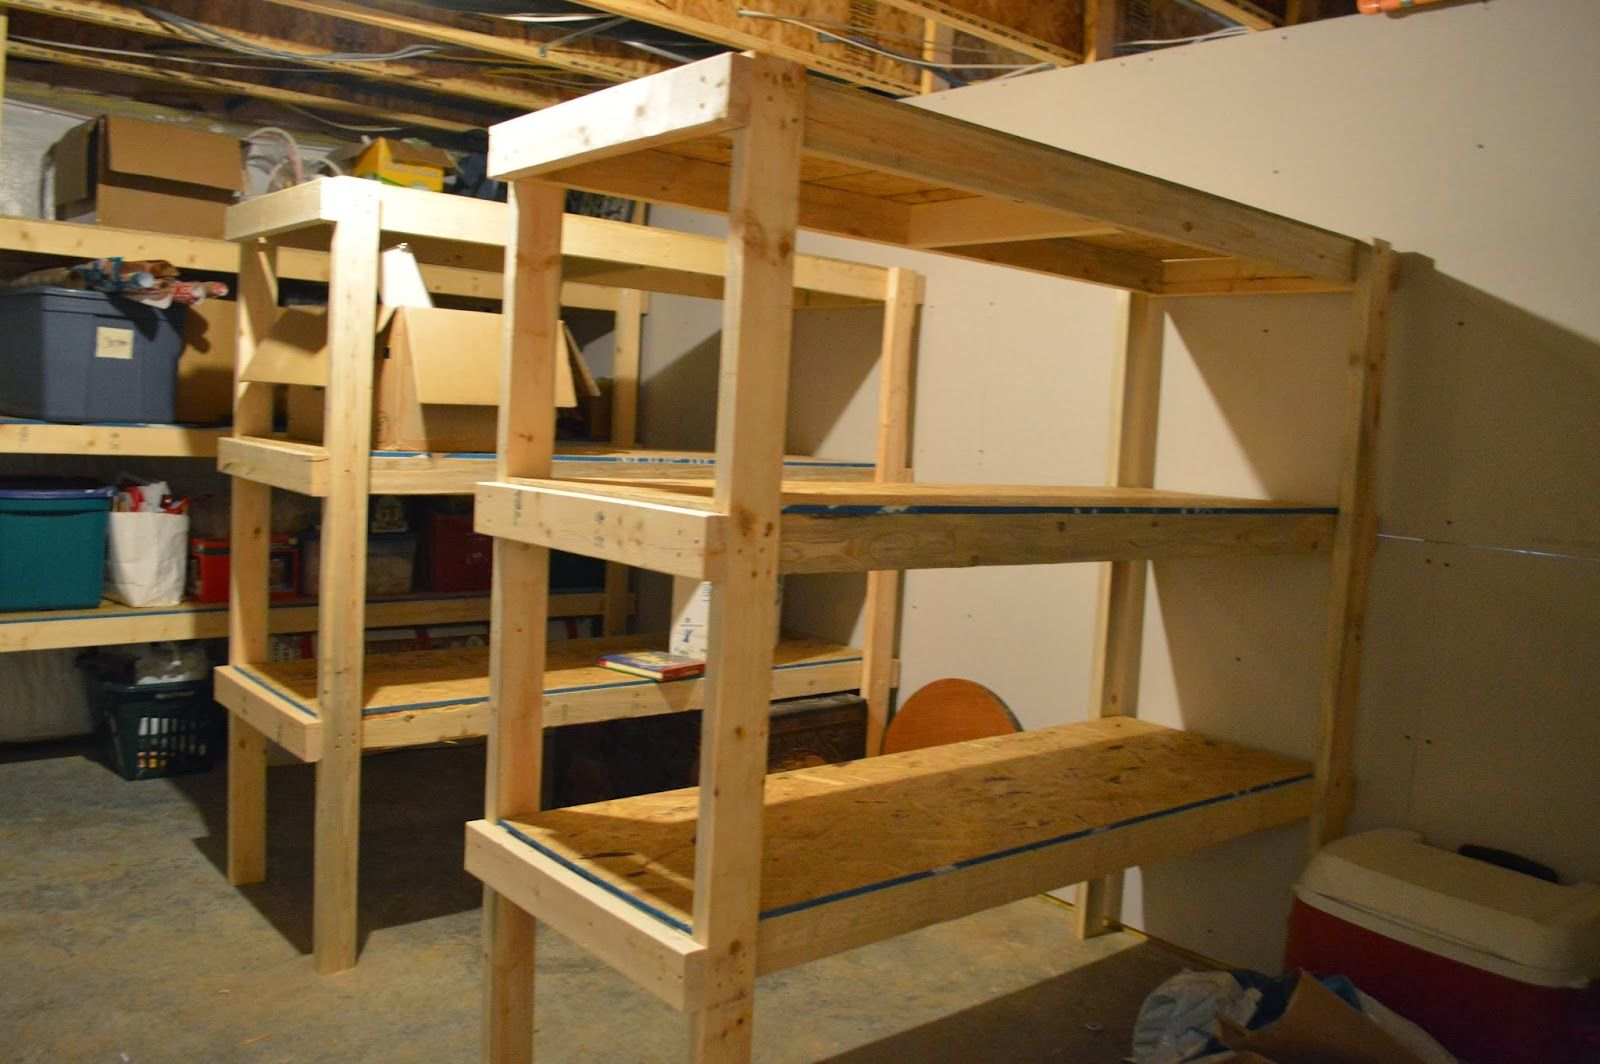 Garage Racks Austin Tx 14 Basement Laundry Room Ideas For Small Space Basement Ideas